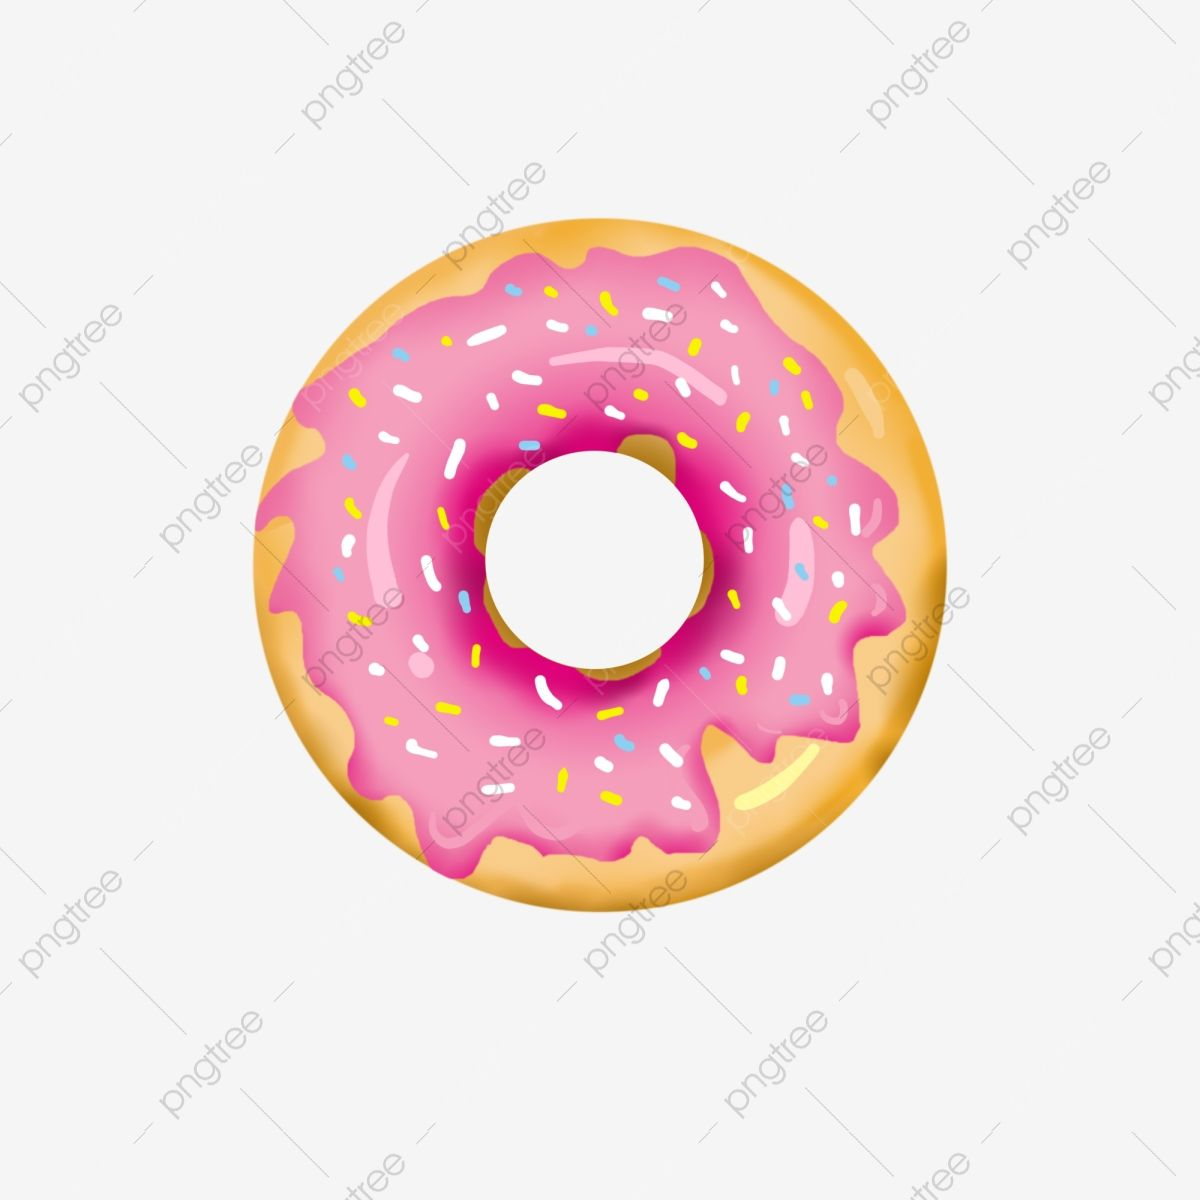 Donut Cartoon Donuts Dessert Gourmet Png Transparent Clipart Image And Psd File For Free Download Donut Cartoon Donut Art Print Cartoons Png